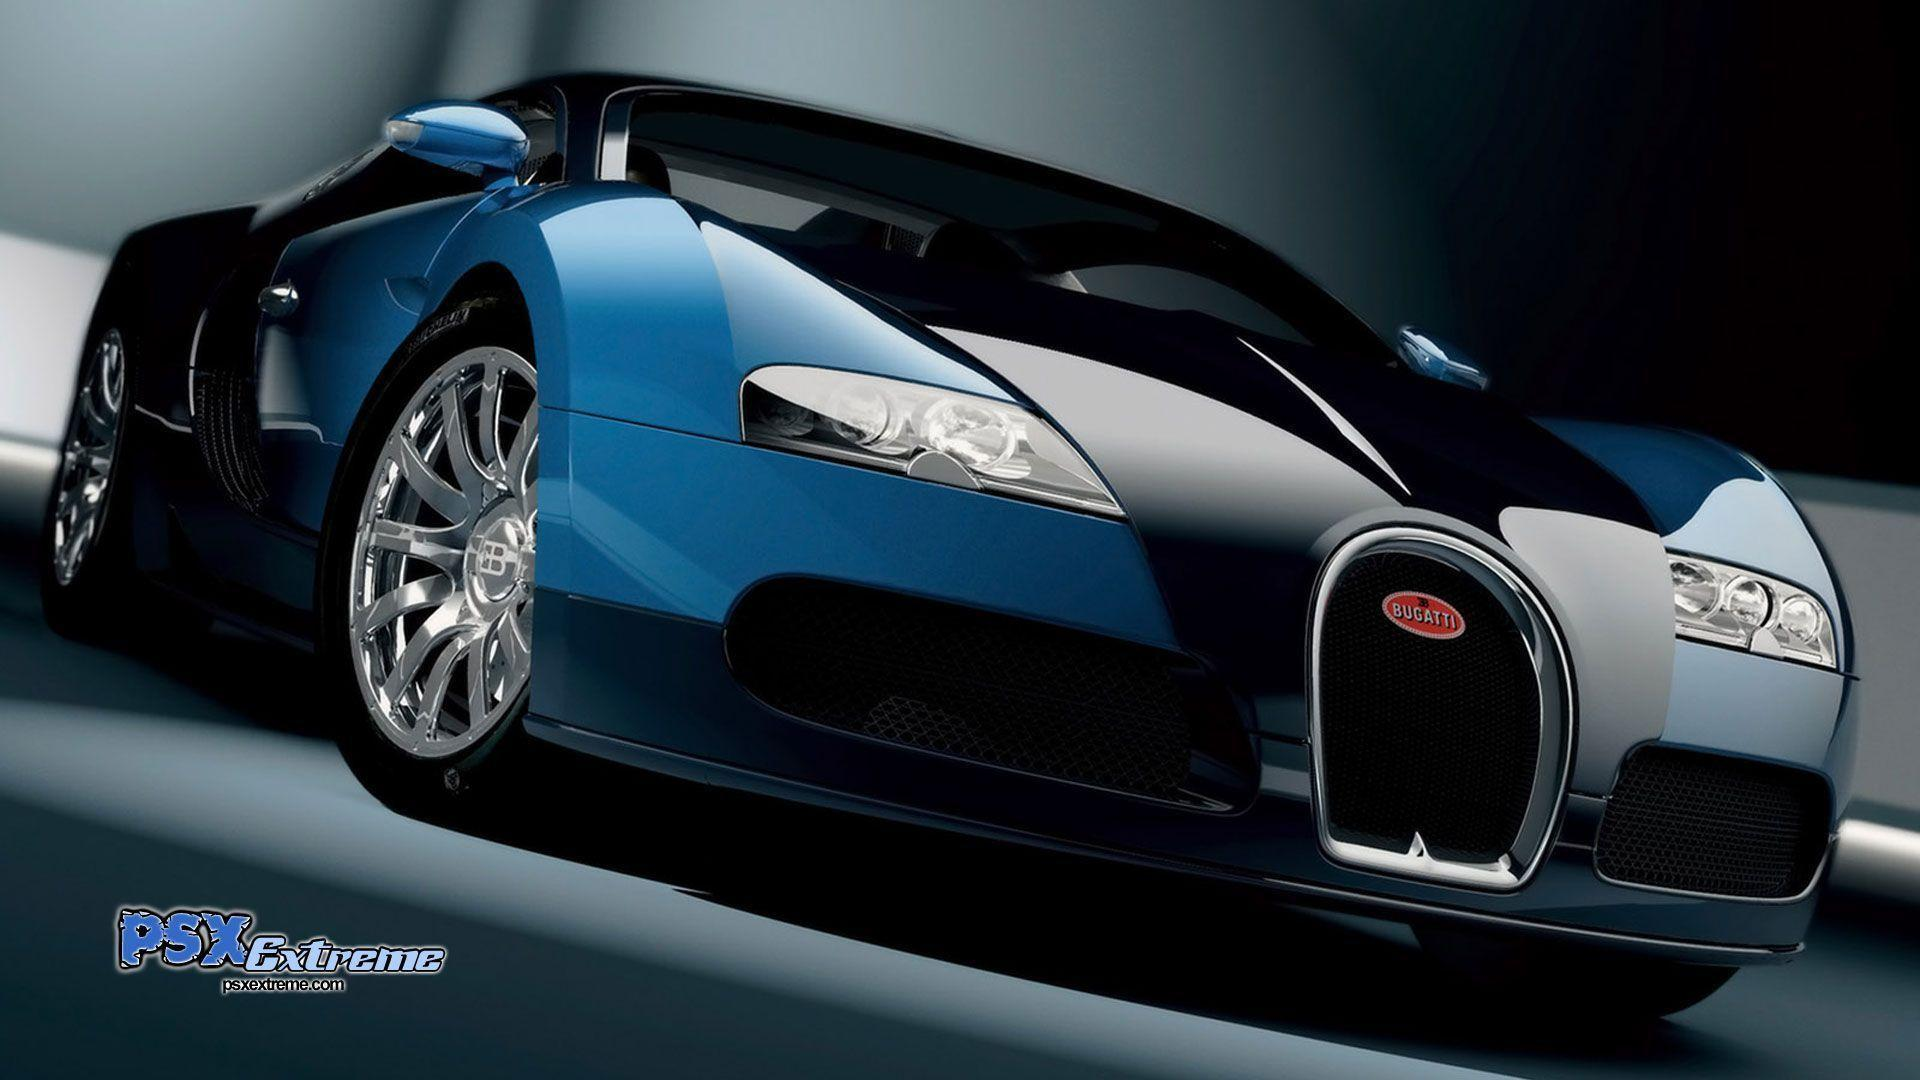 Bugatti veyron wallpapers hd wallpaper cave - Bugatti veyron photos wallpapers ...